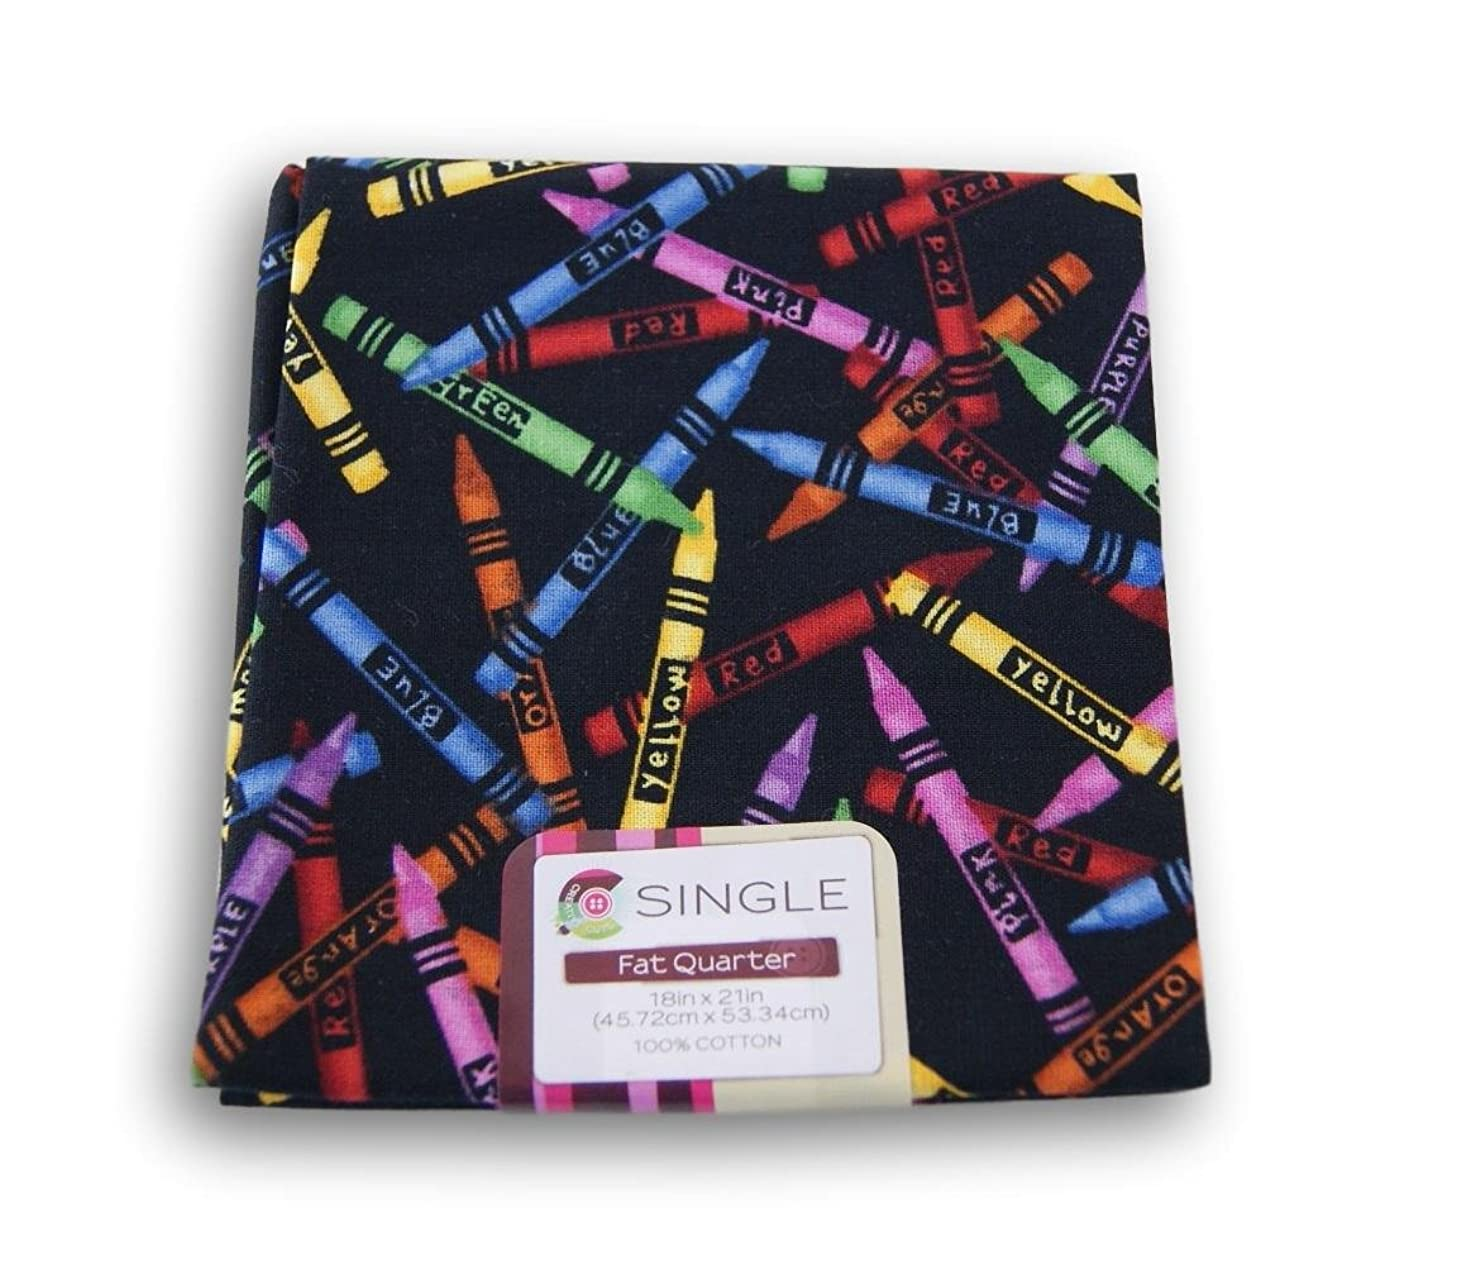 Creative Cuts Fat Quarters - Crayons on Black Background